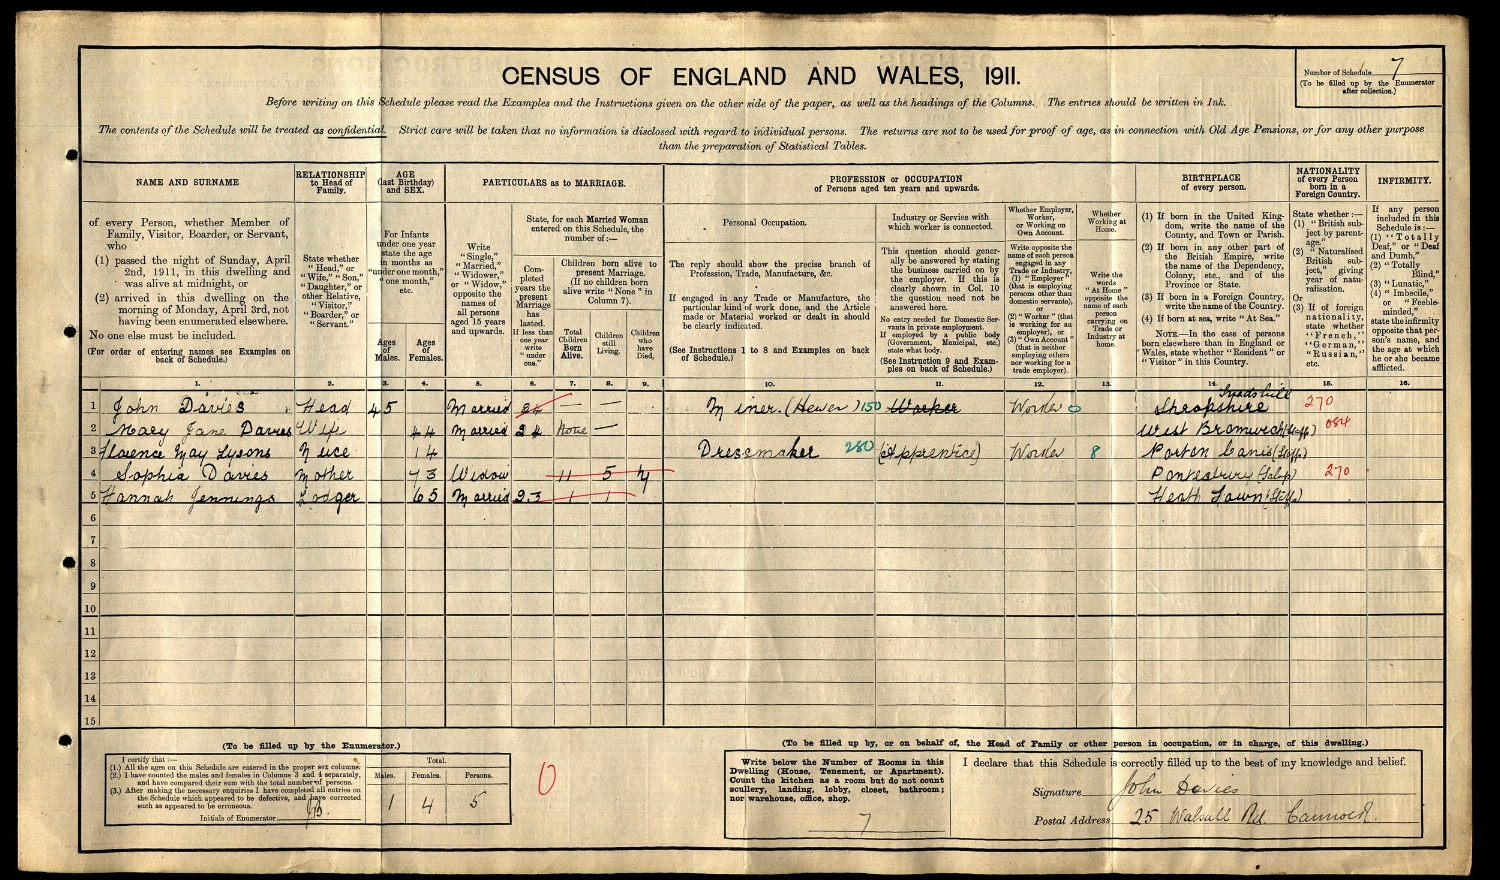 1911 Census entry for Florence May Lysons